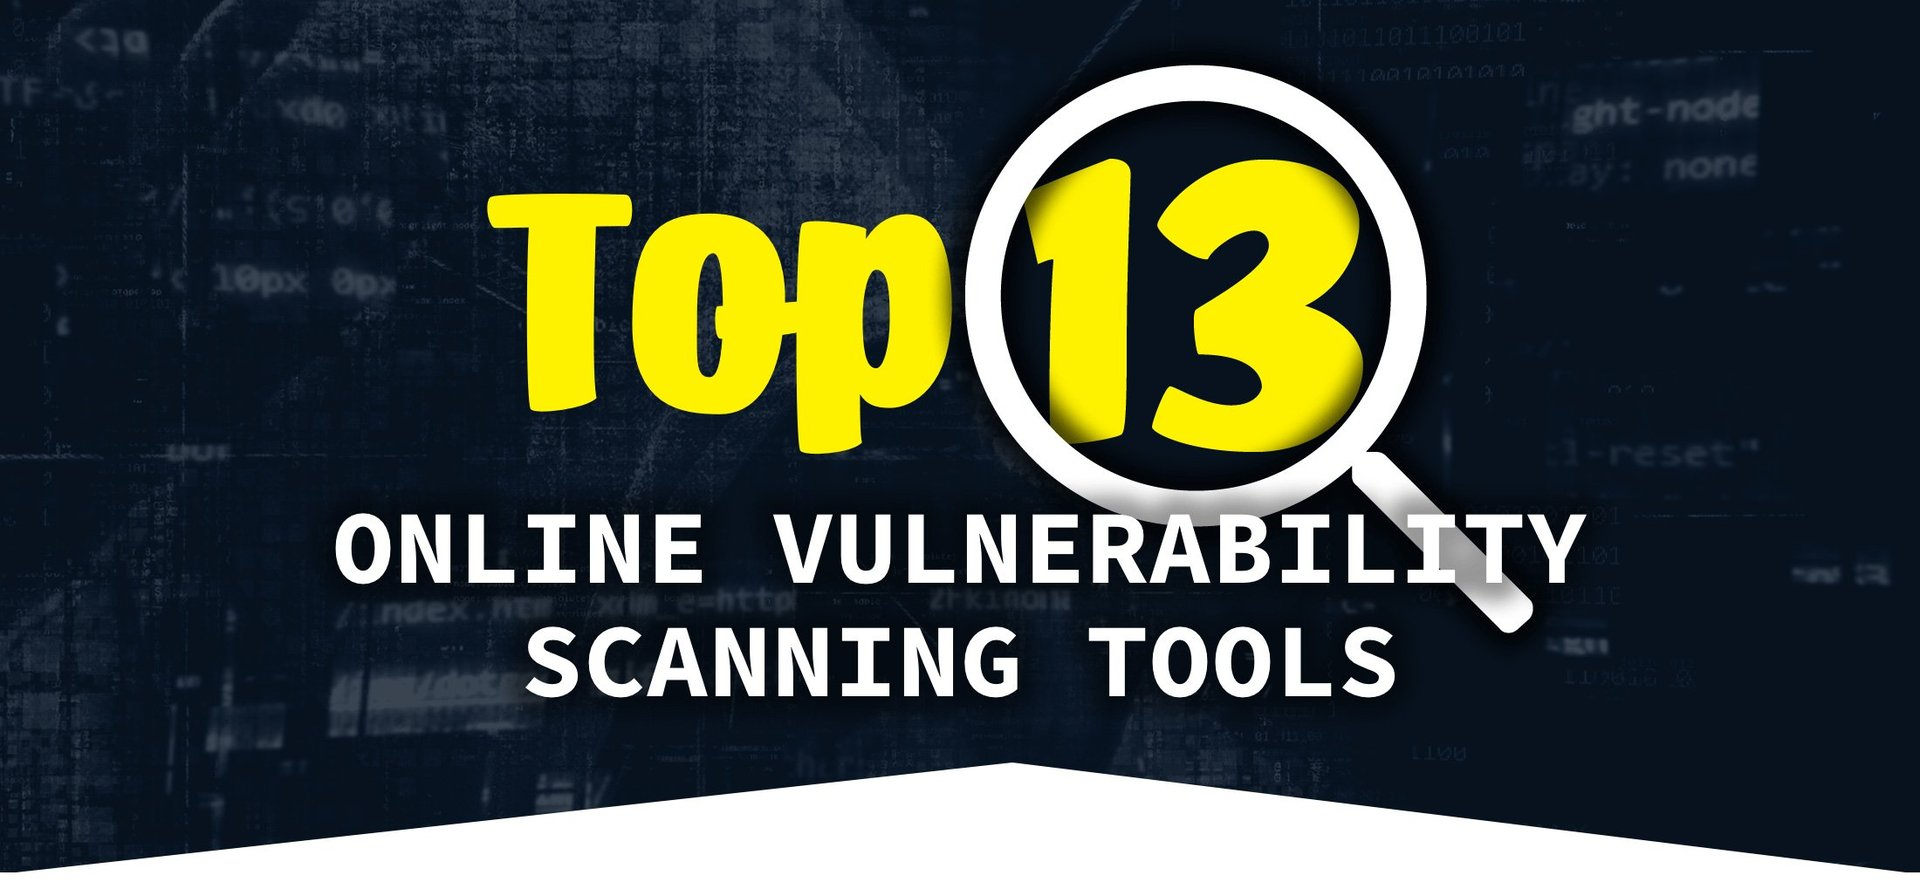 13 Online Vulnerability Scanning Tools to Scan your Website